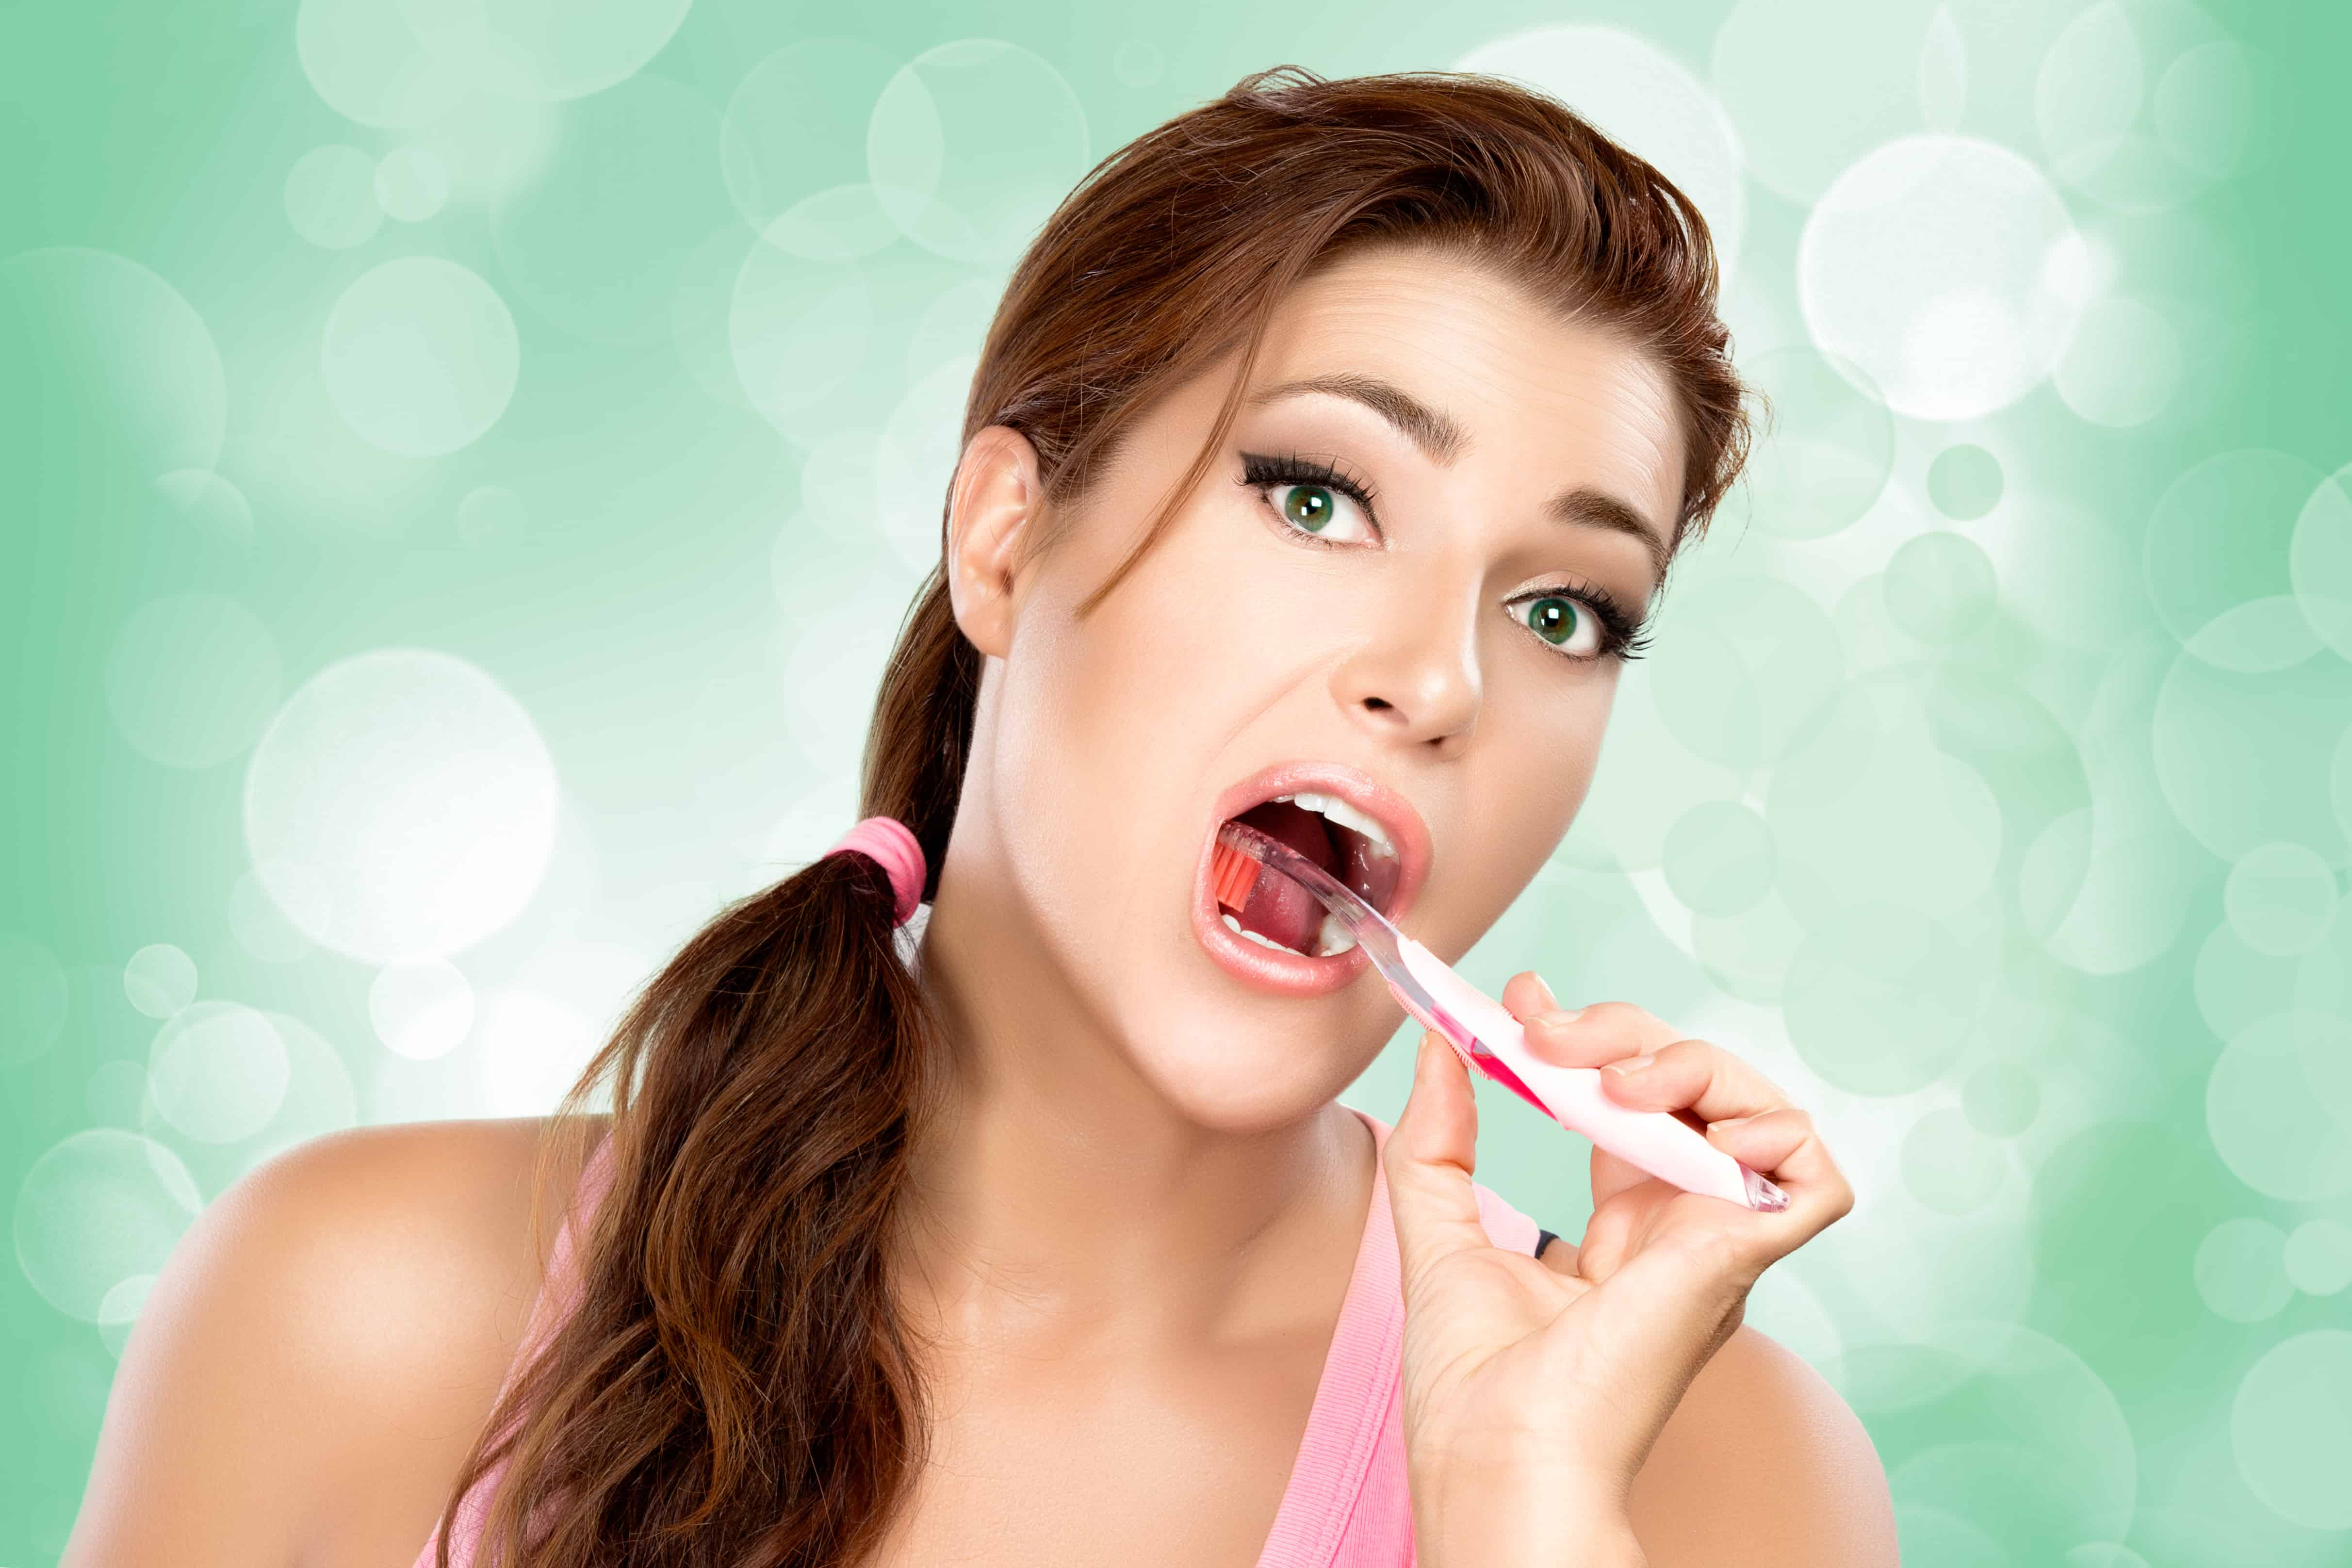 Beauty and funny young woman brushing teeth with comical expression